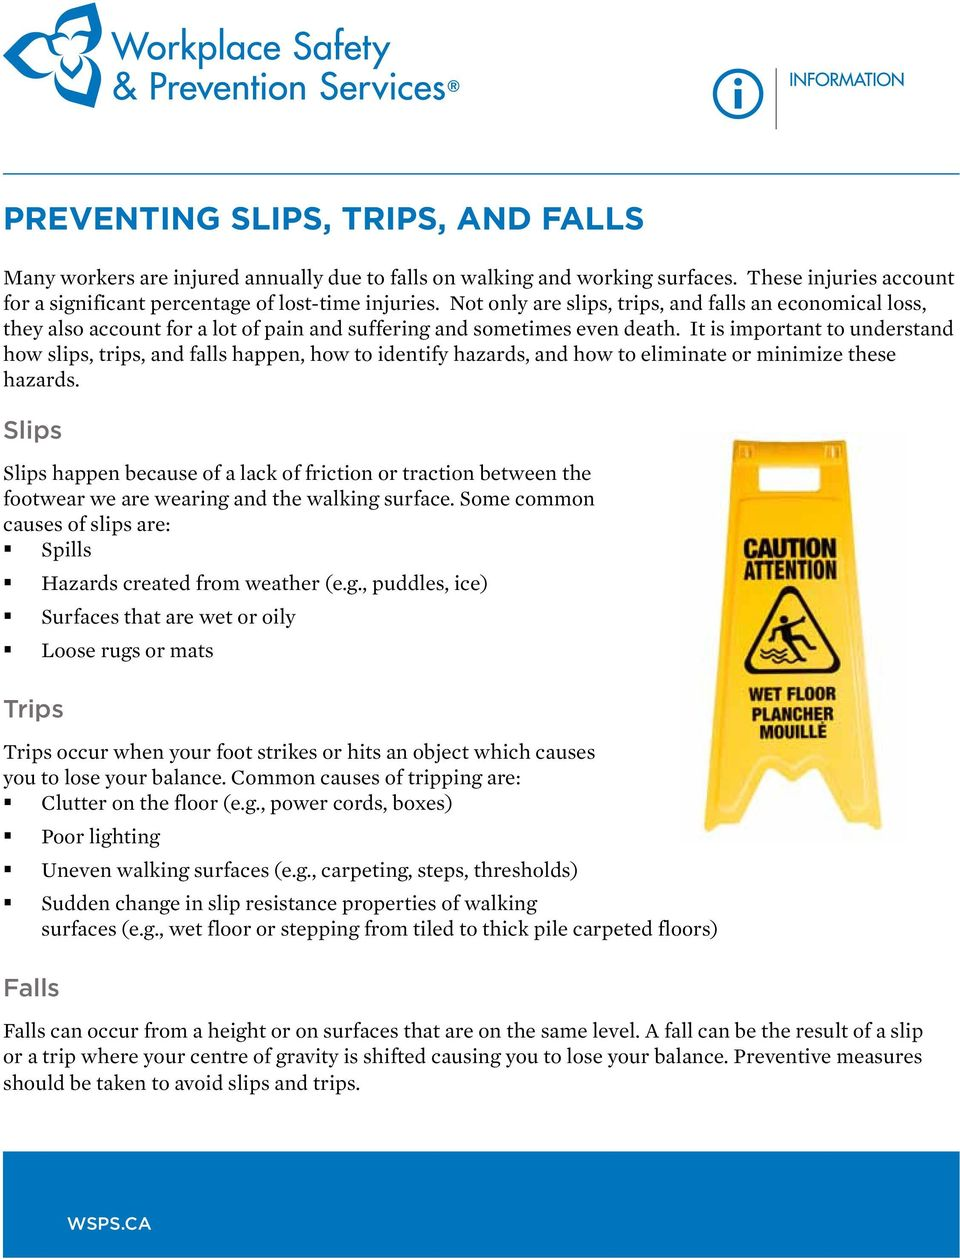 It is important to understand how slips, trips, and falls happen, how to identify hazards, and how to eliminate or minimize these hazards.